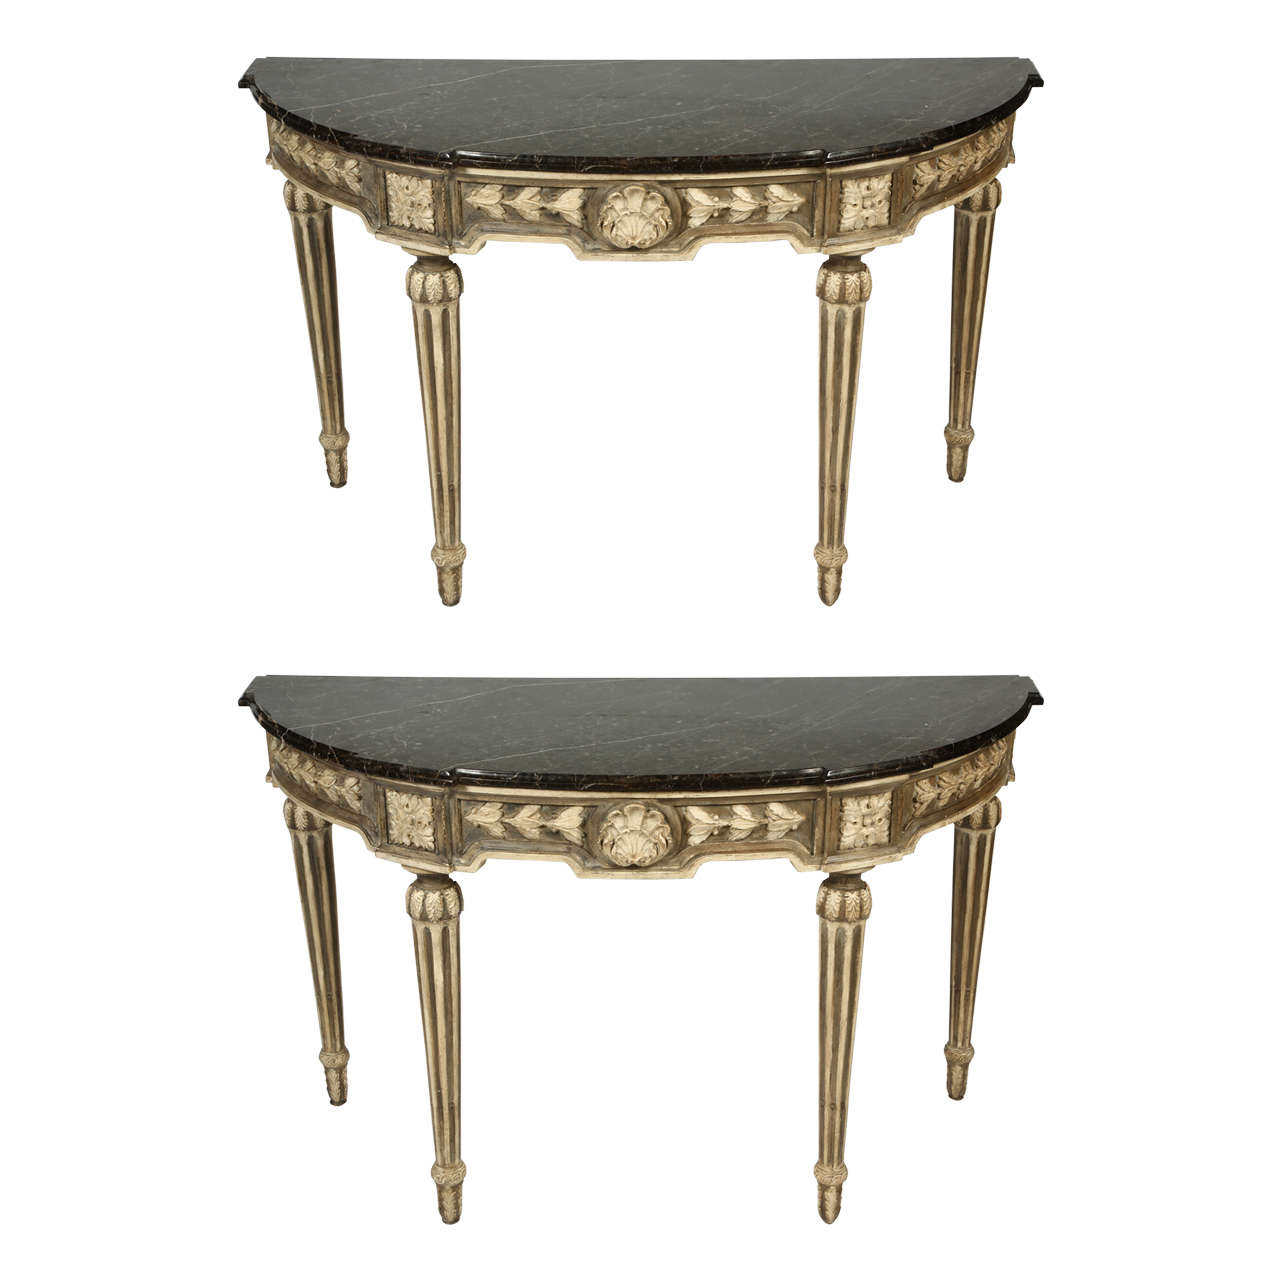 Pair of french louis xvi style demilune console tables with marble tops at 1stdibs - Marble tops for furniture ...